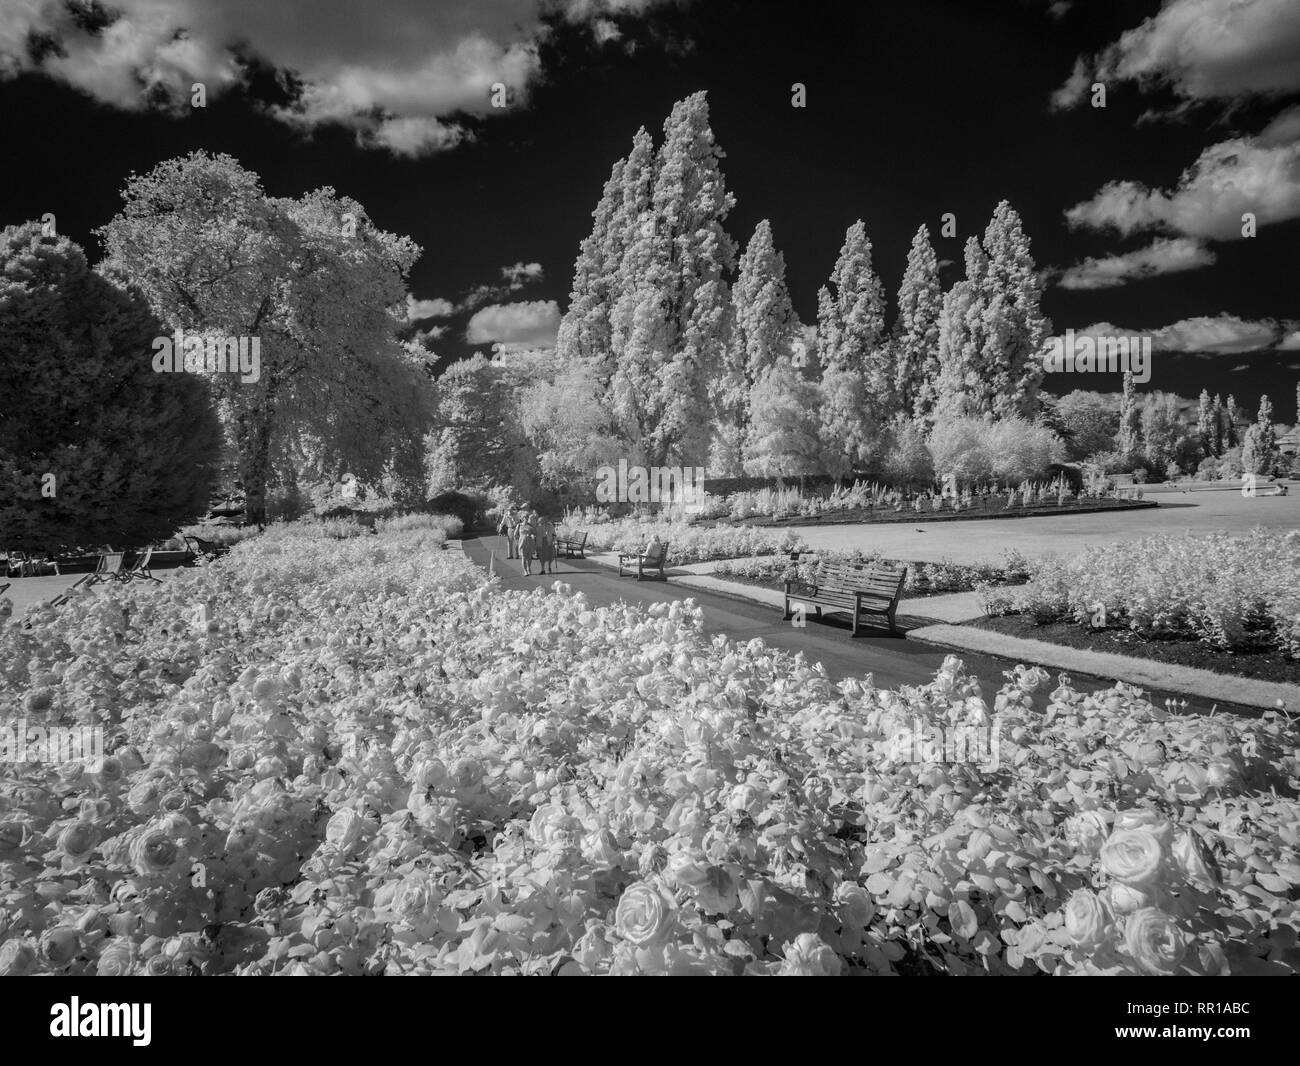 London in infra red. - Stock Image